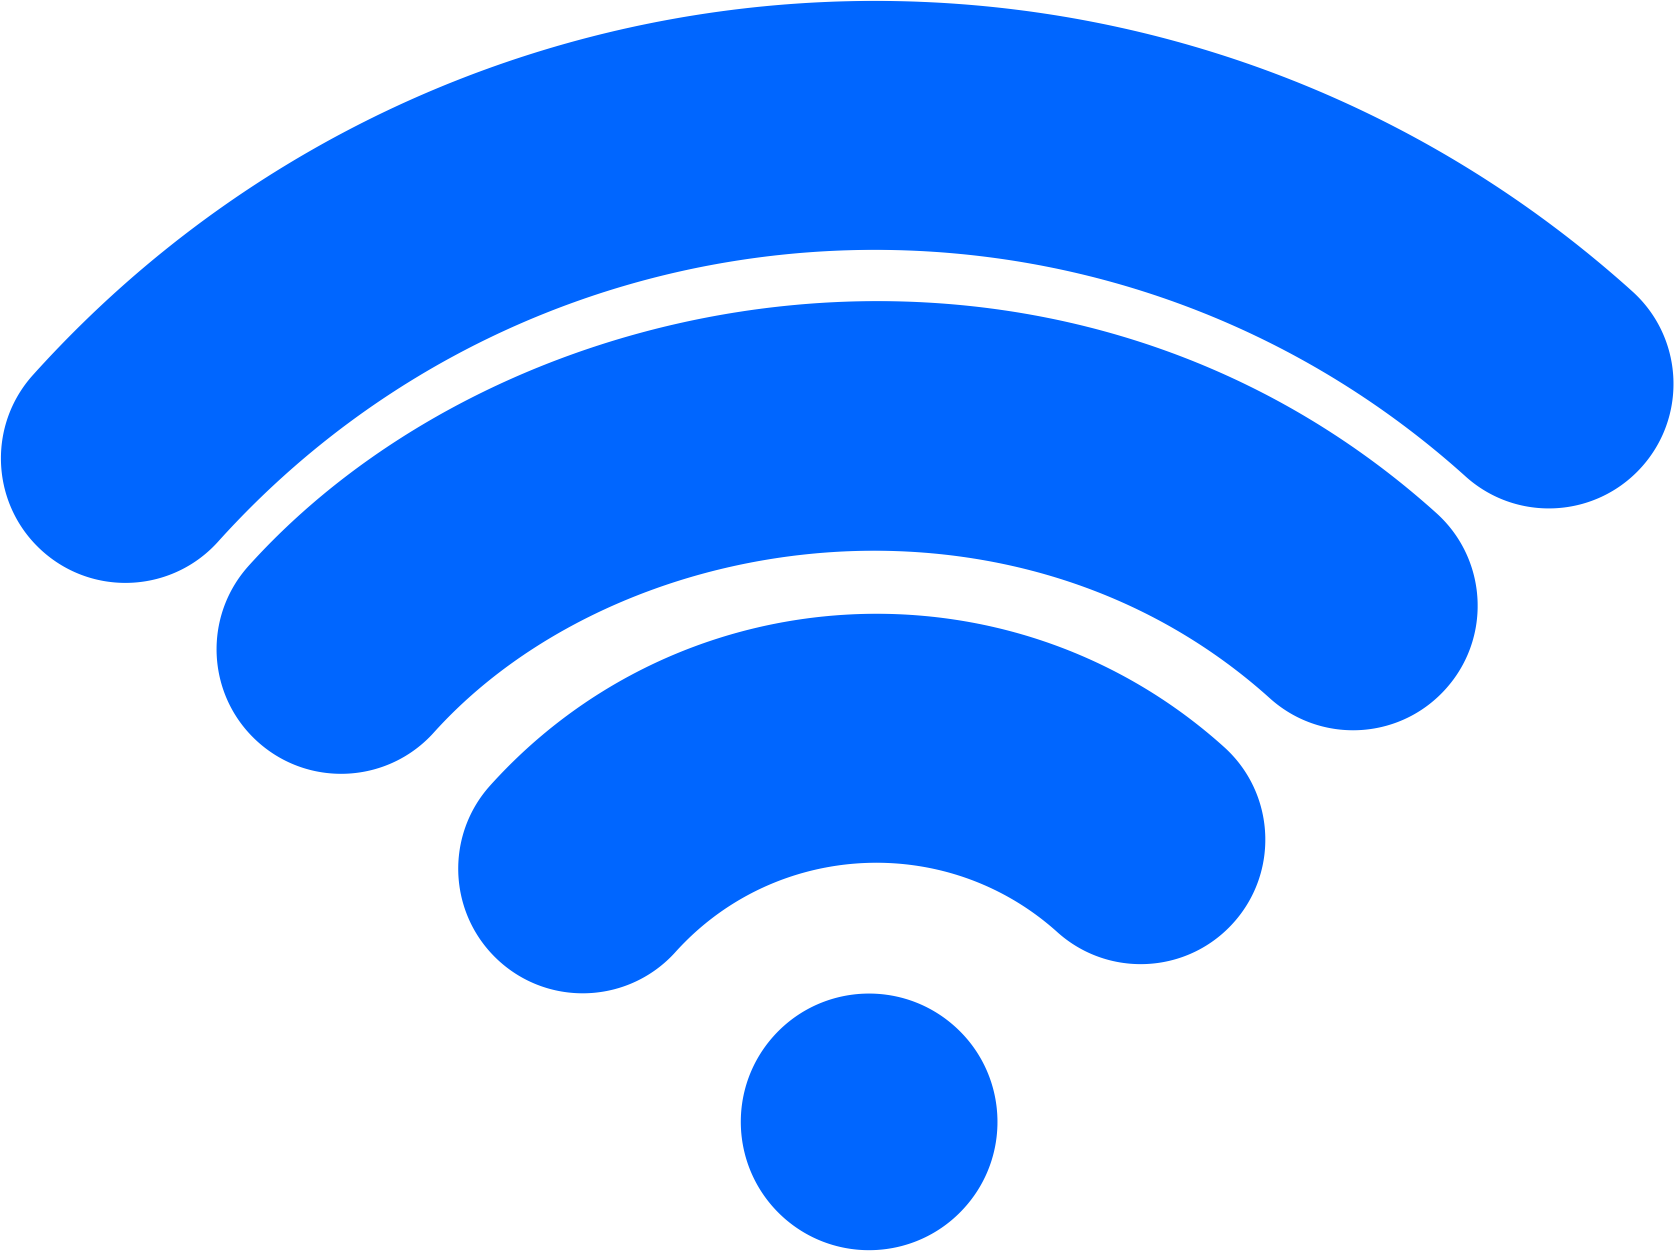 Trai issues draft design. Network clipart network wifi